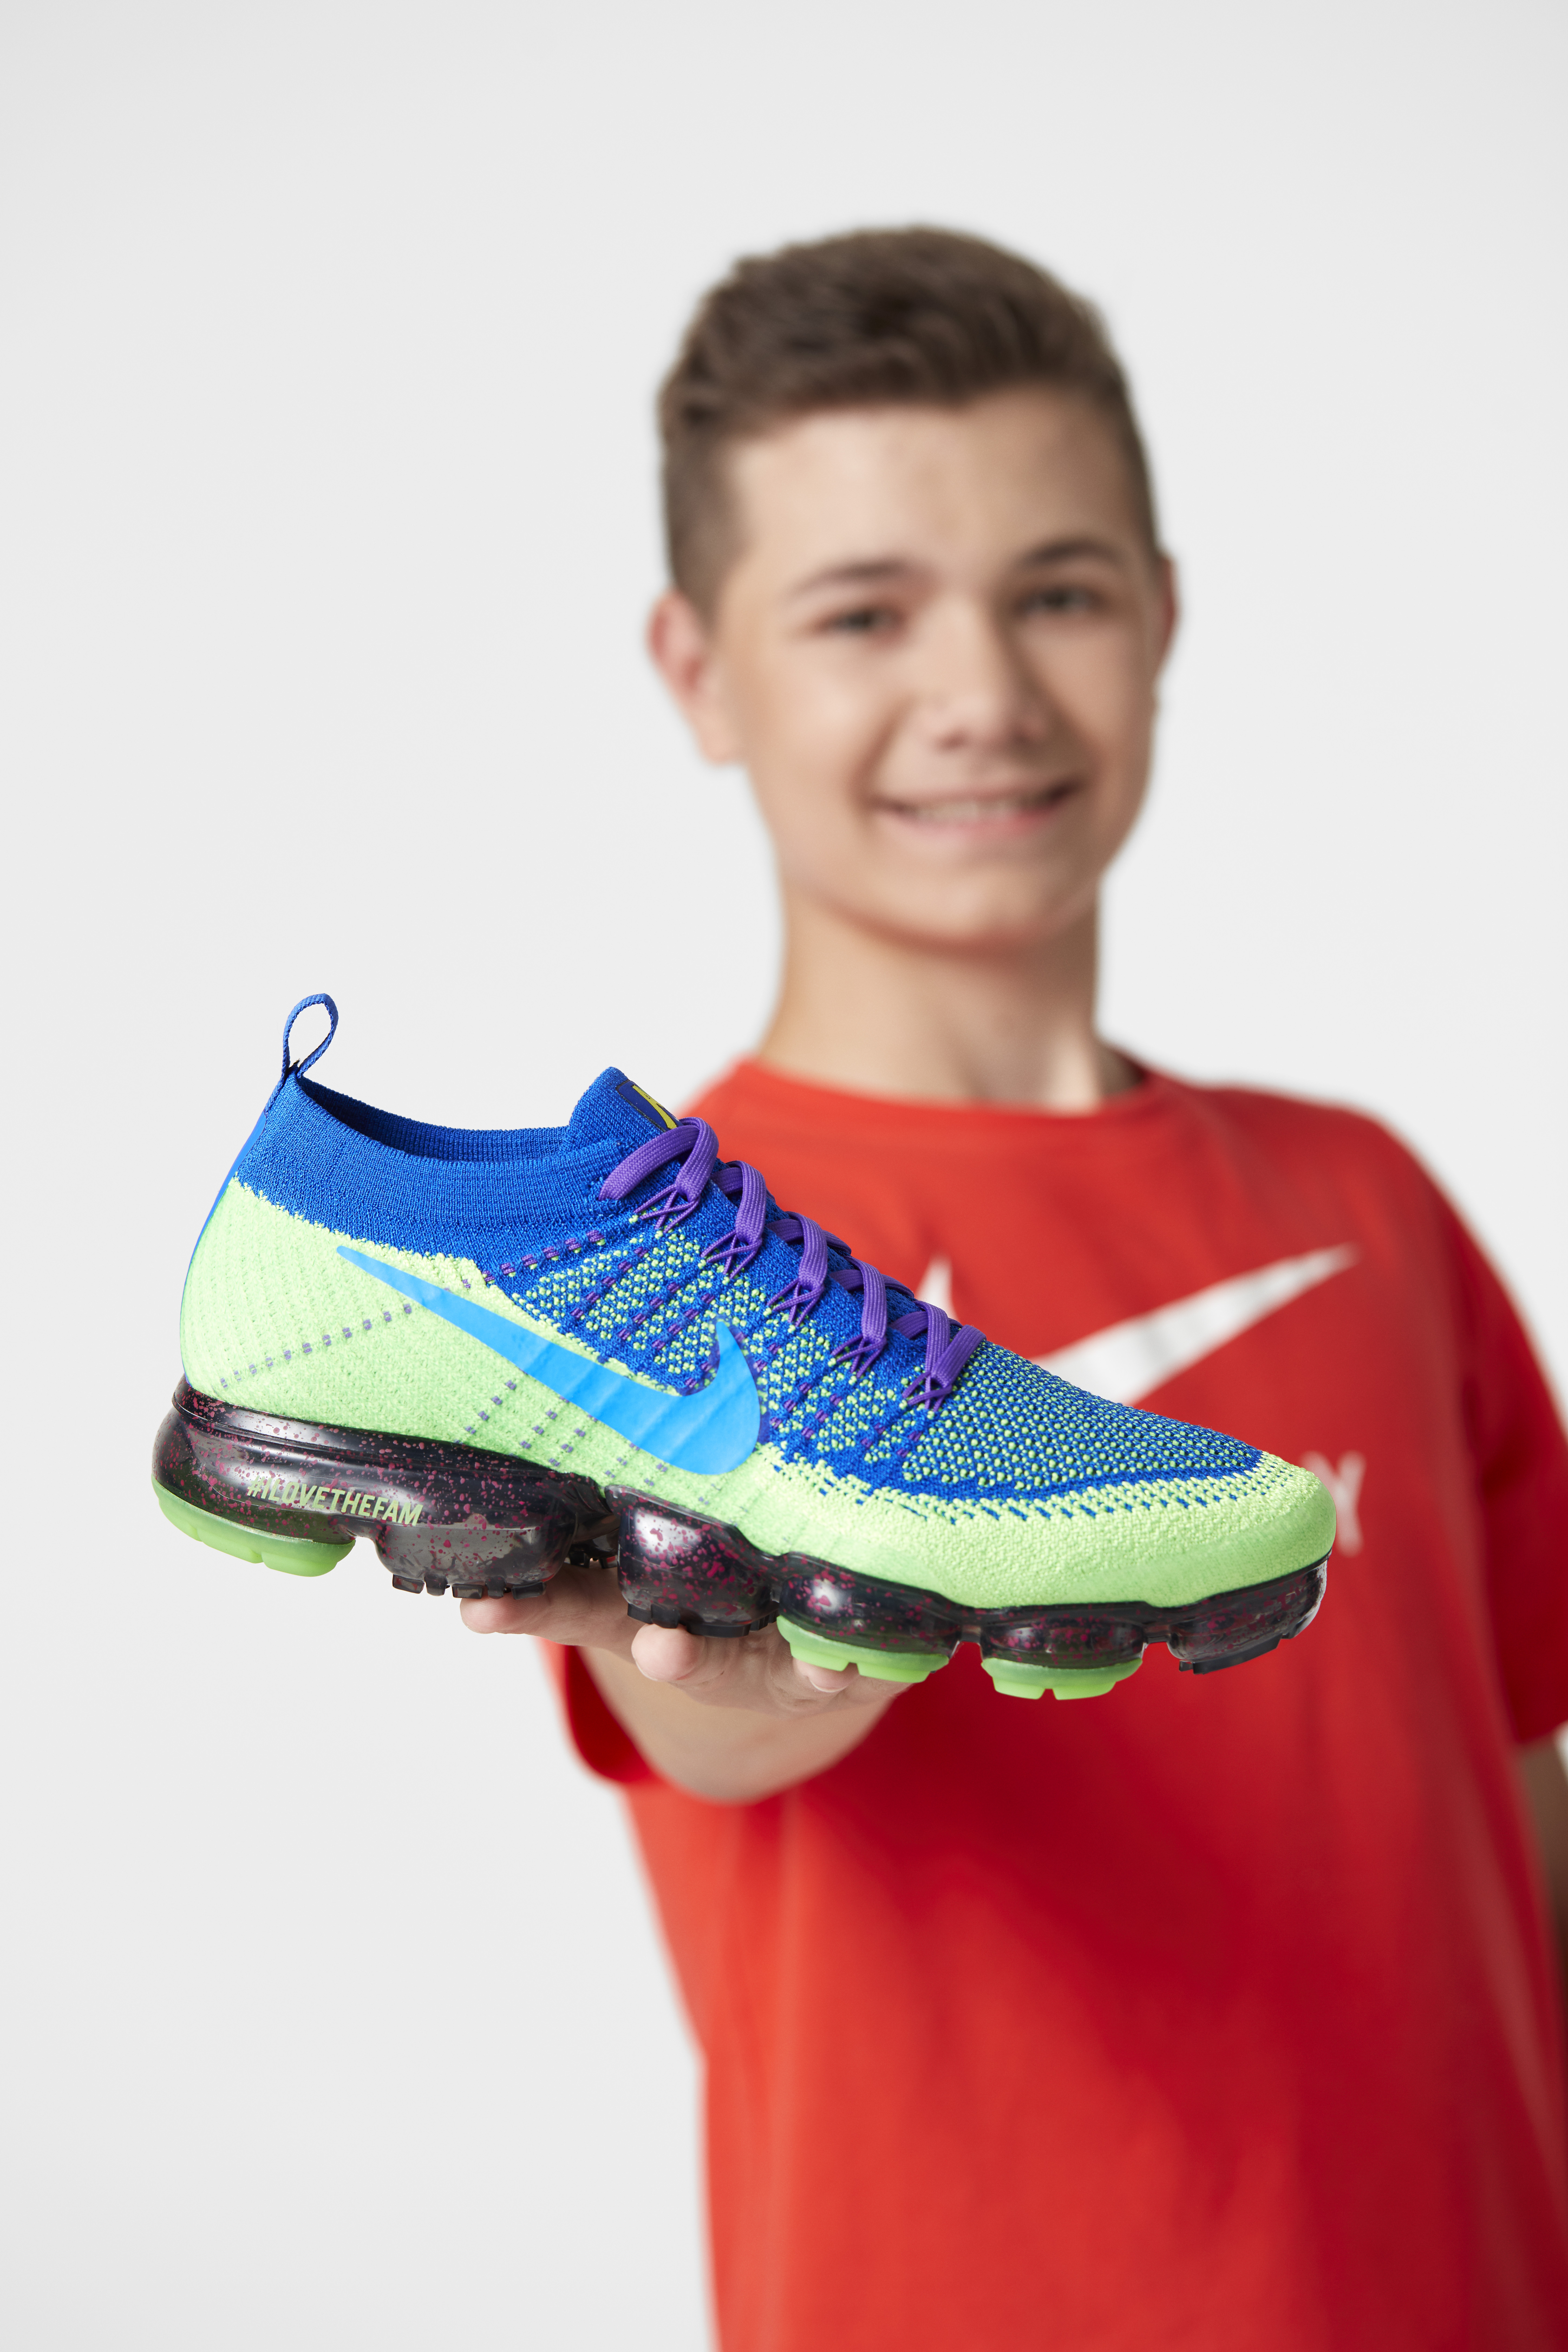 Nike x Doernbecher Freestyle Collection 2017 - Nike Air VaporMax Flyknit x Andrew Merydith